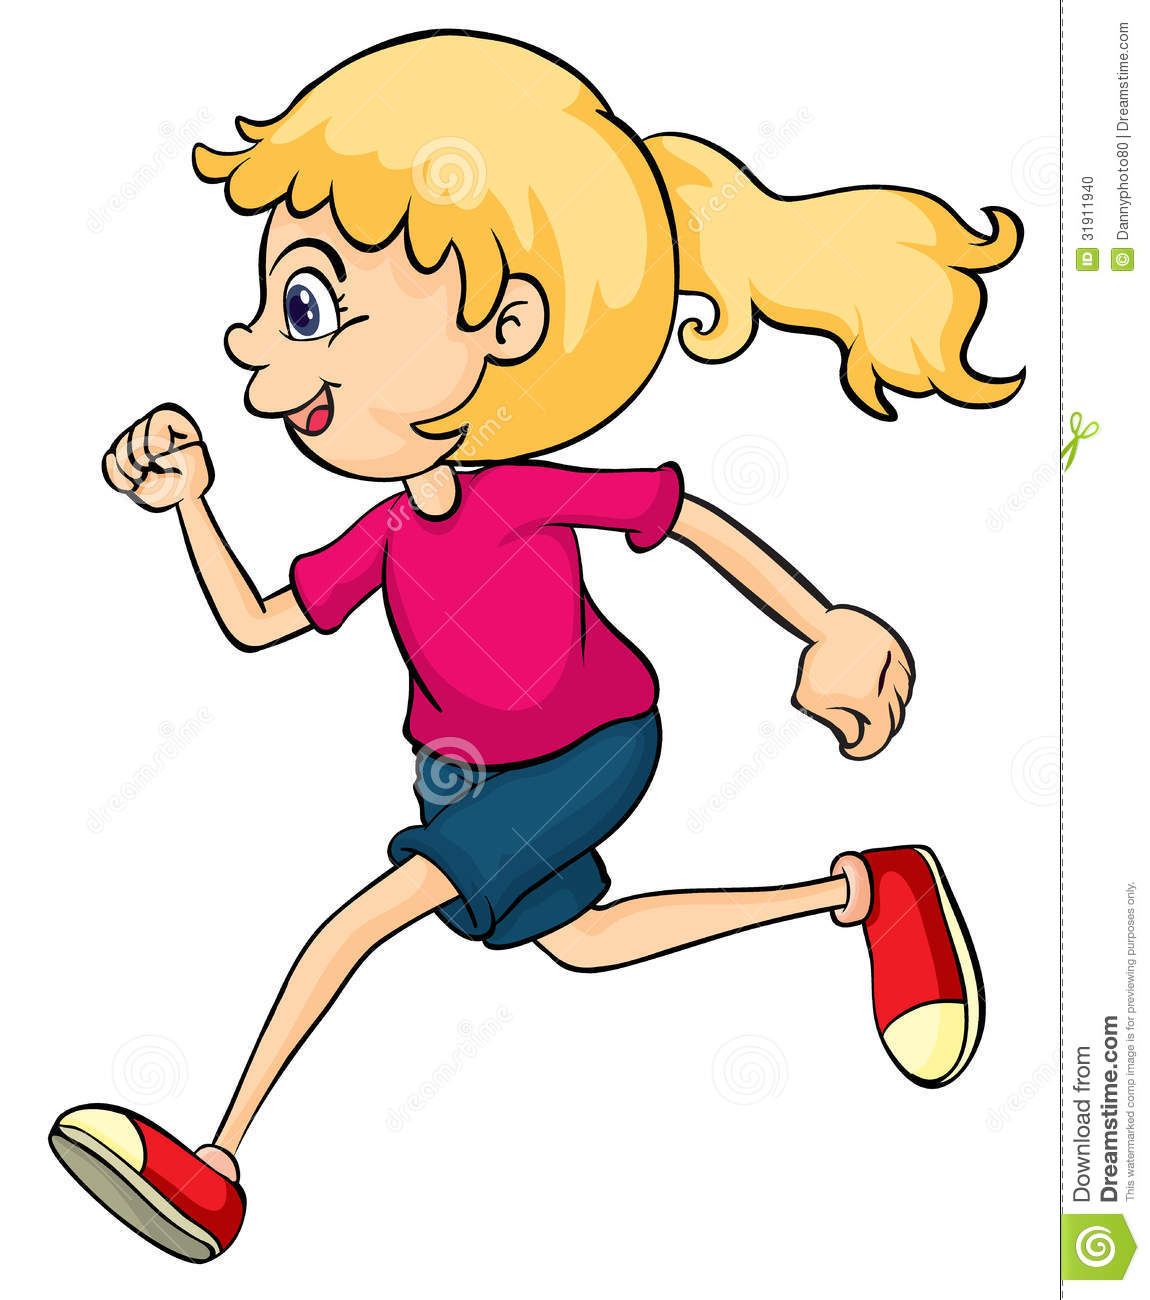 Race clipart child athletics Athletics girl Club running background